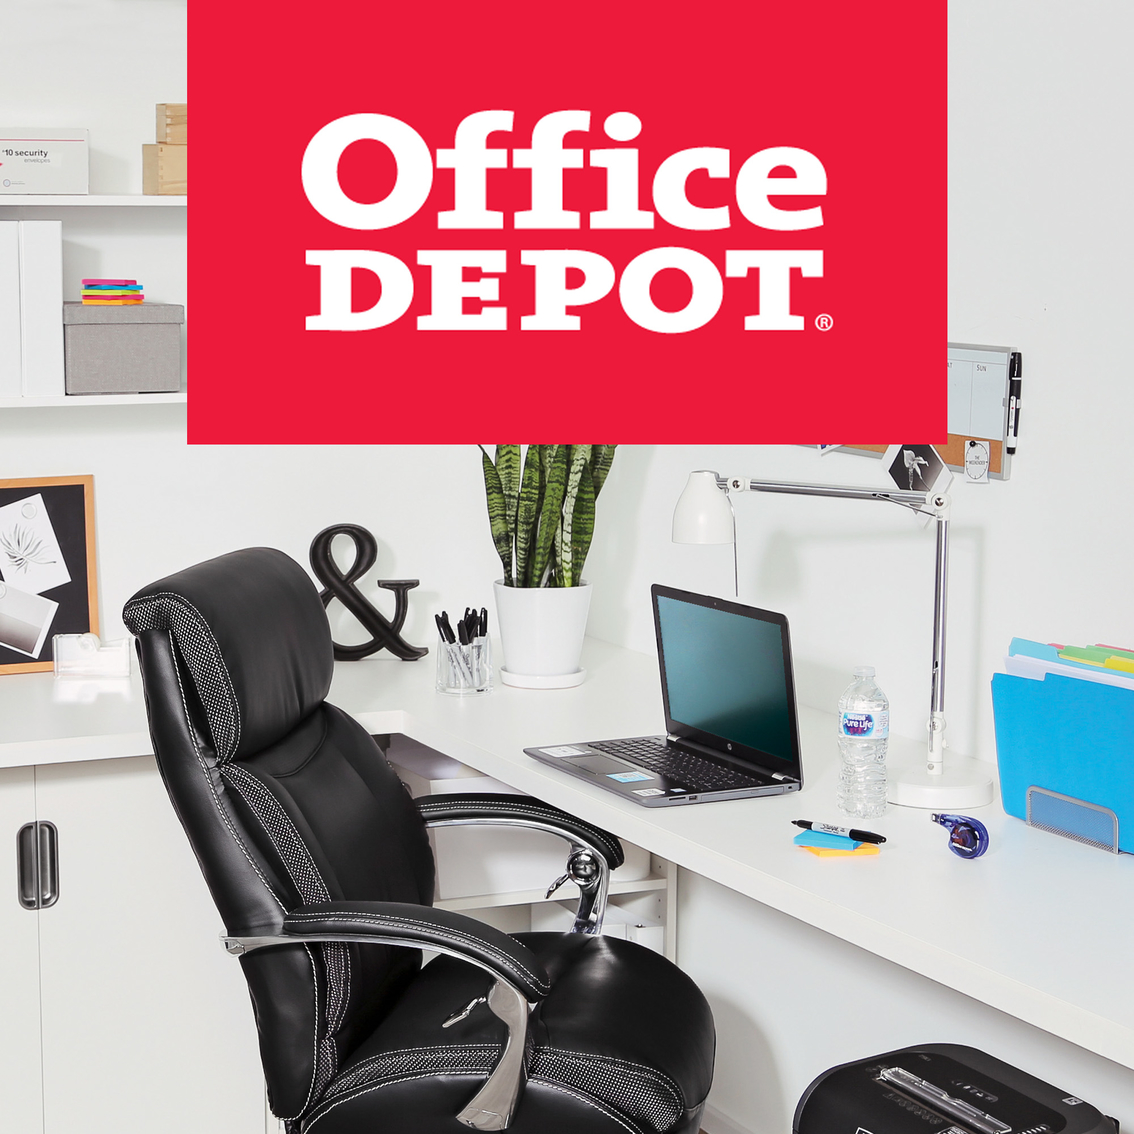 Office depot services register new product - 0000